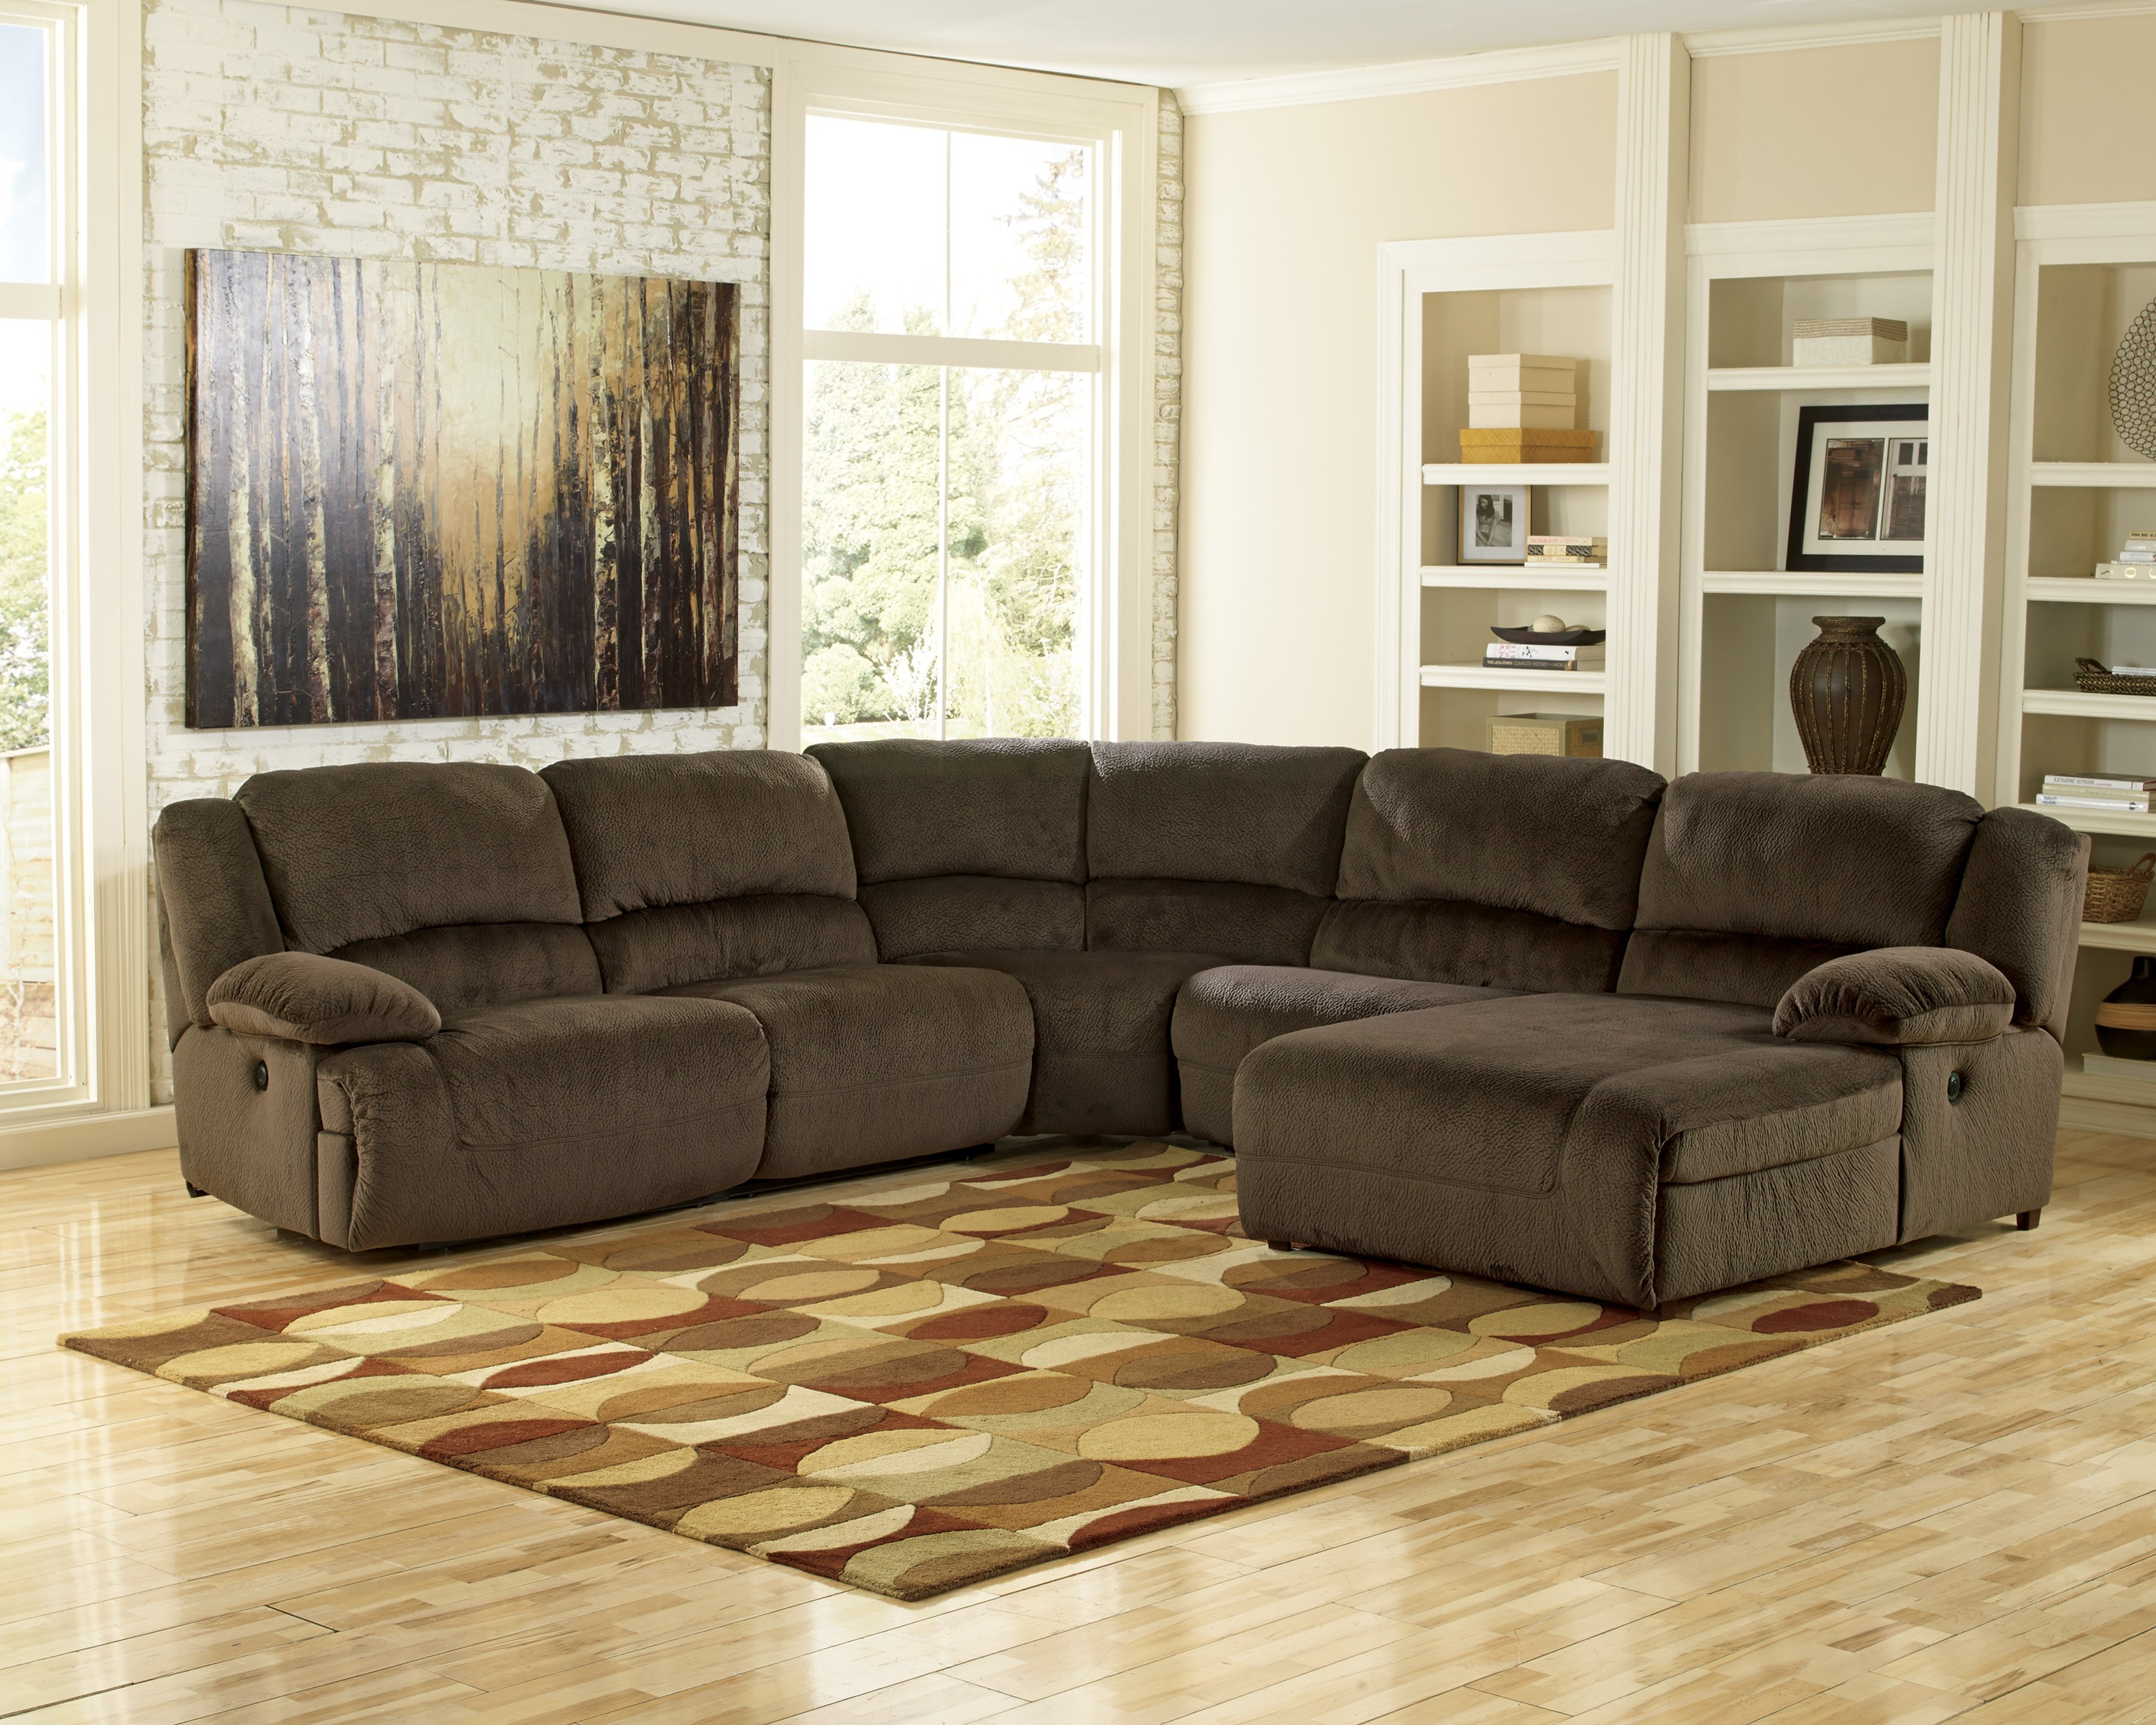 Signature Designashley Toletta Left Arm Facing Sectional Inside Most Up To Date Tess 2 Piece Power Reclining Sectionals With Laf Chaise (Gallery 17 of 20)